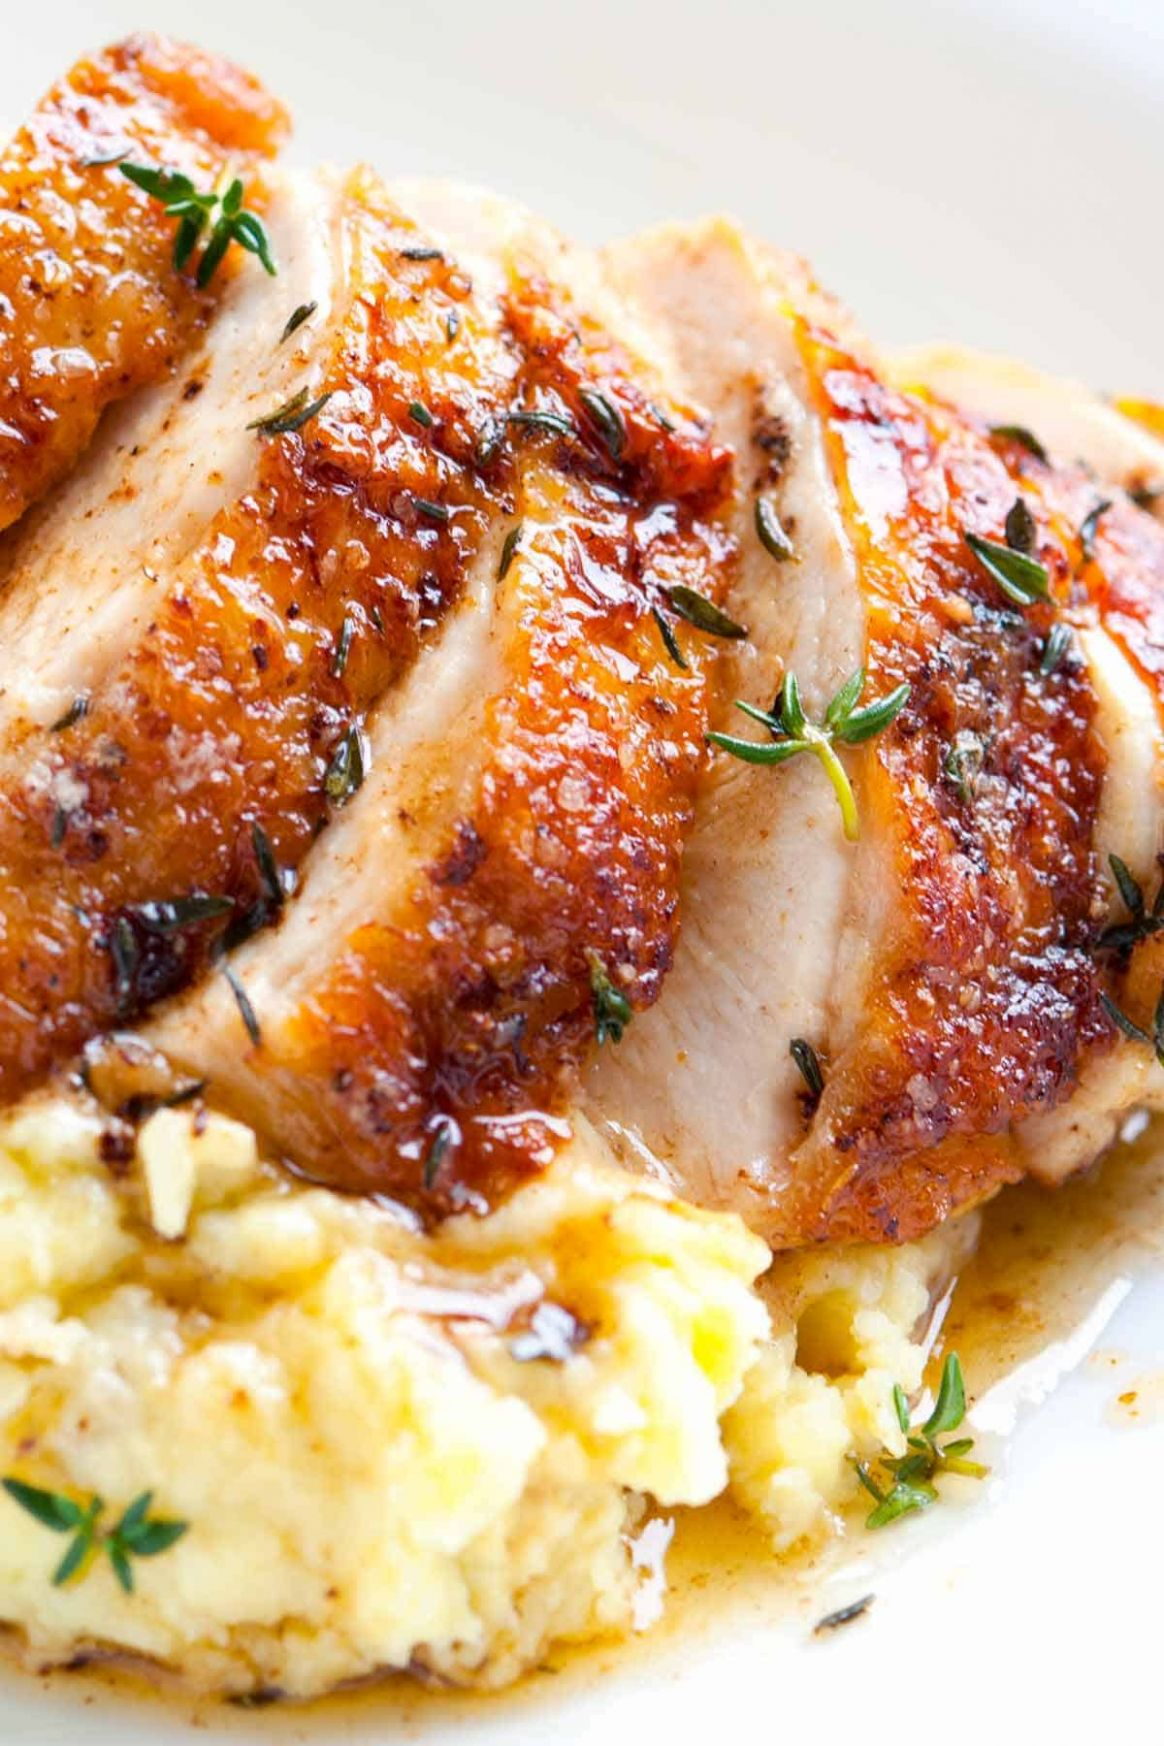 Easy Pan Roasted Chicken Breasts with Thyme - Recipes Chicken Breast Skillet